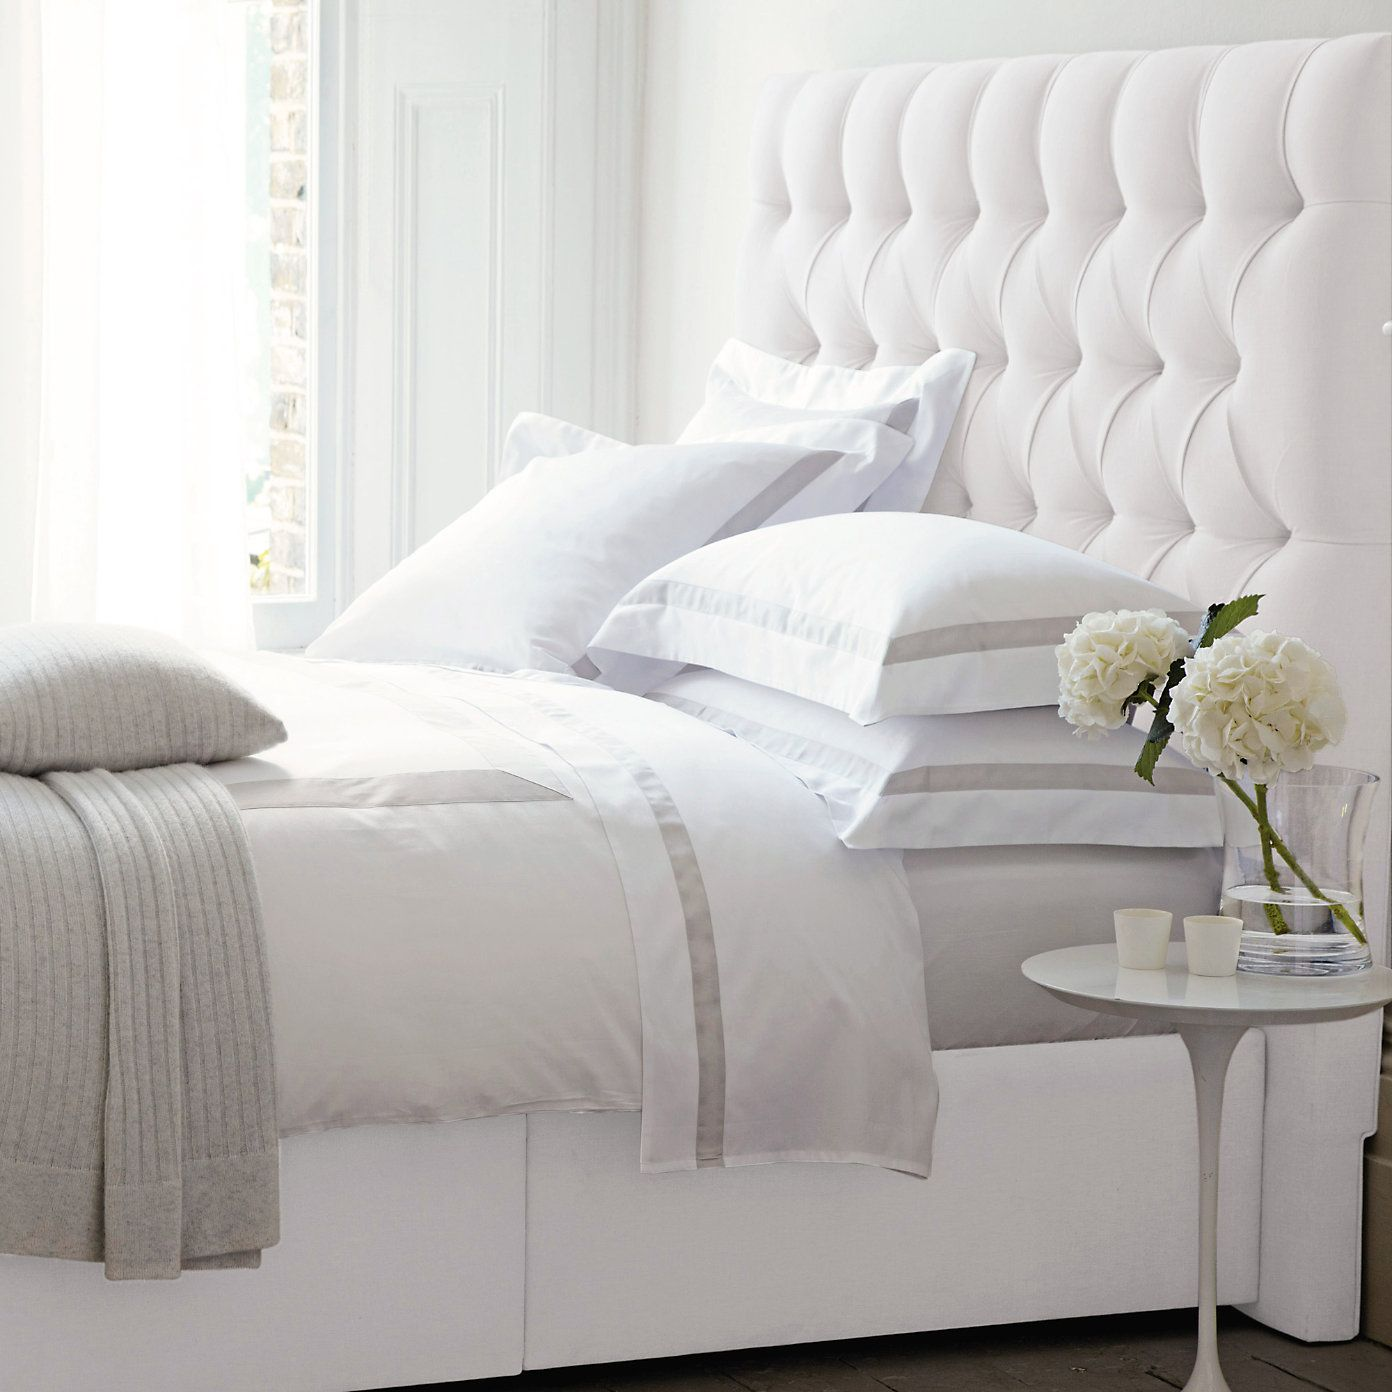 Richmond Headboard Beds The White Company For Peter Pan